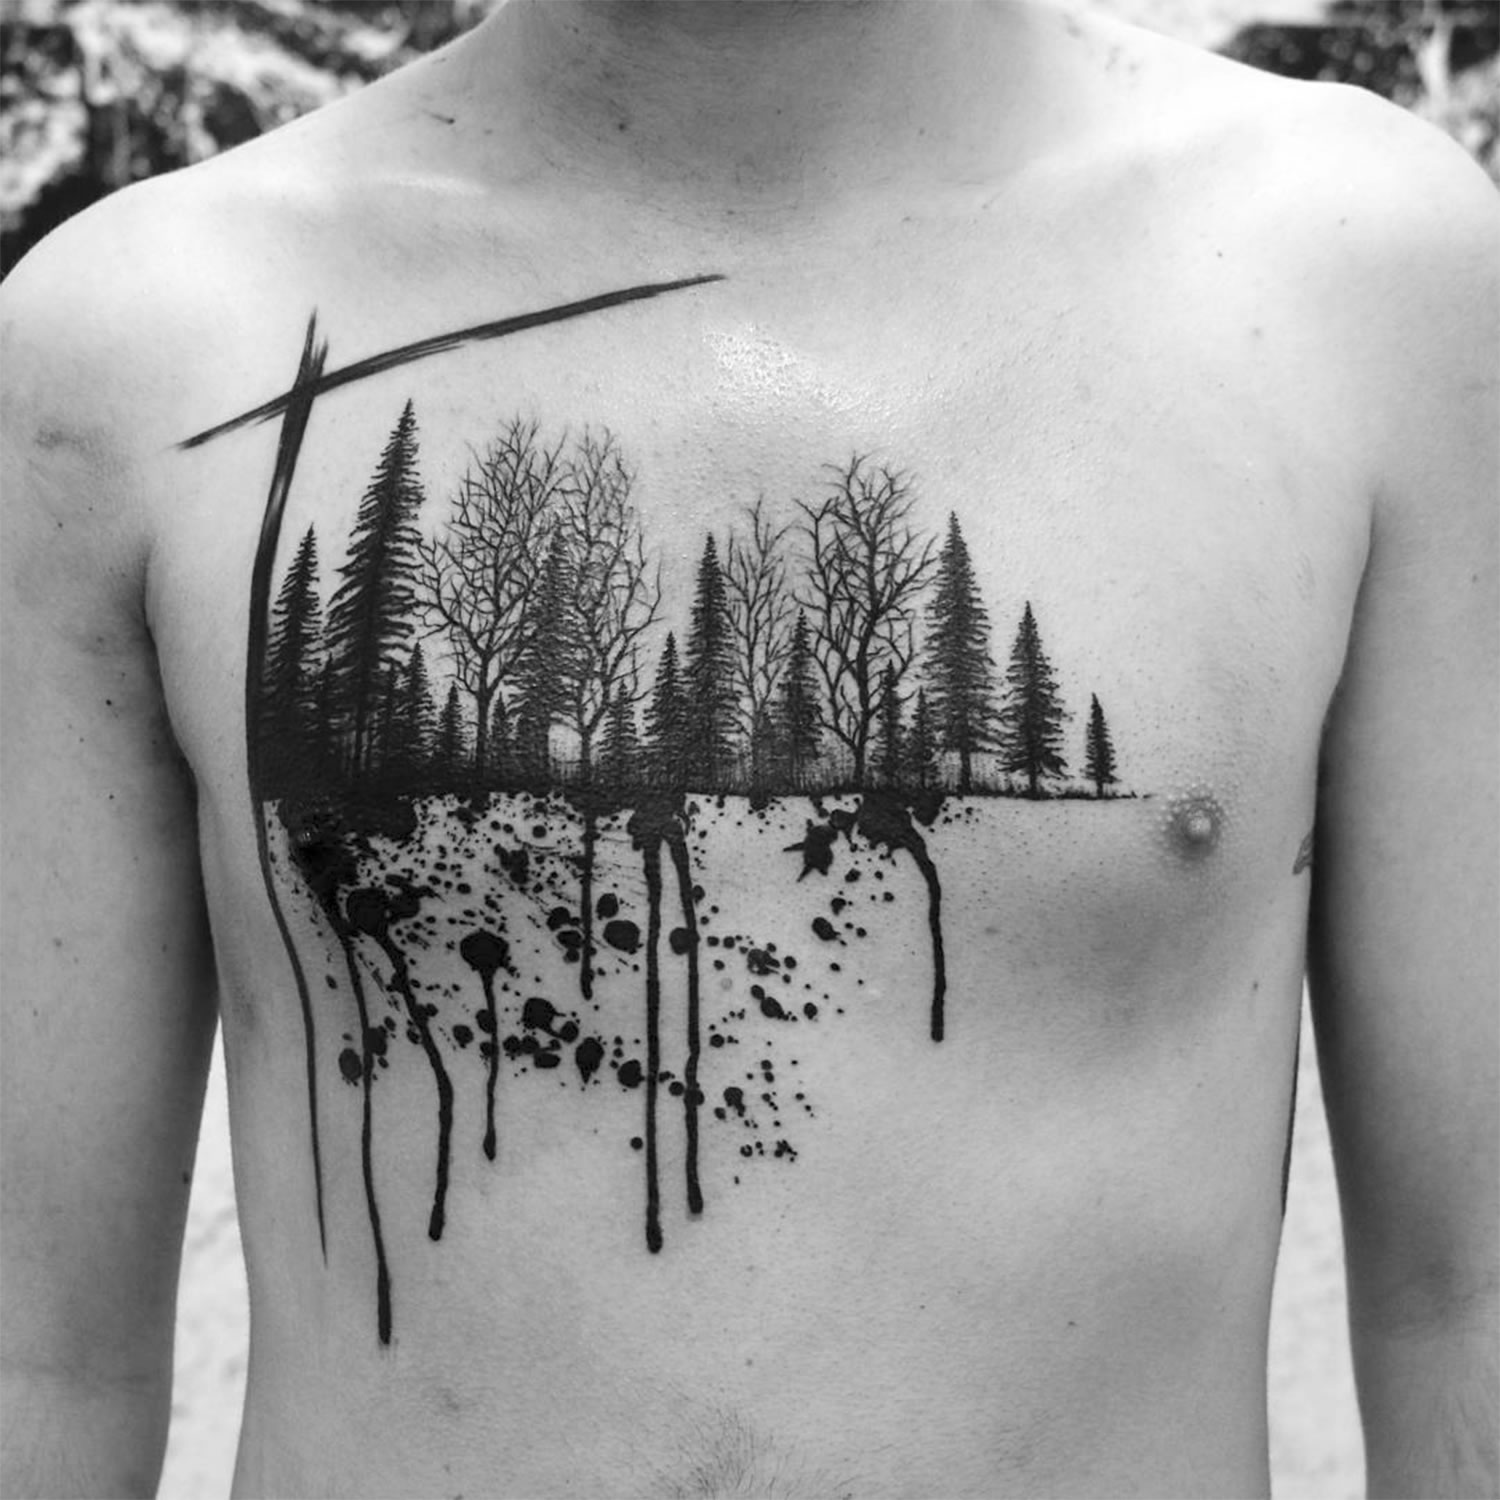 nature scene on chest by by Marian Merl, paint drips, black ink